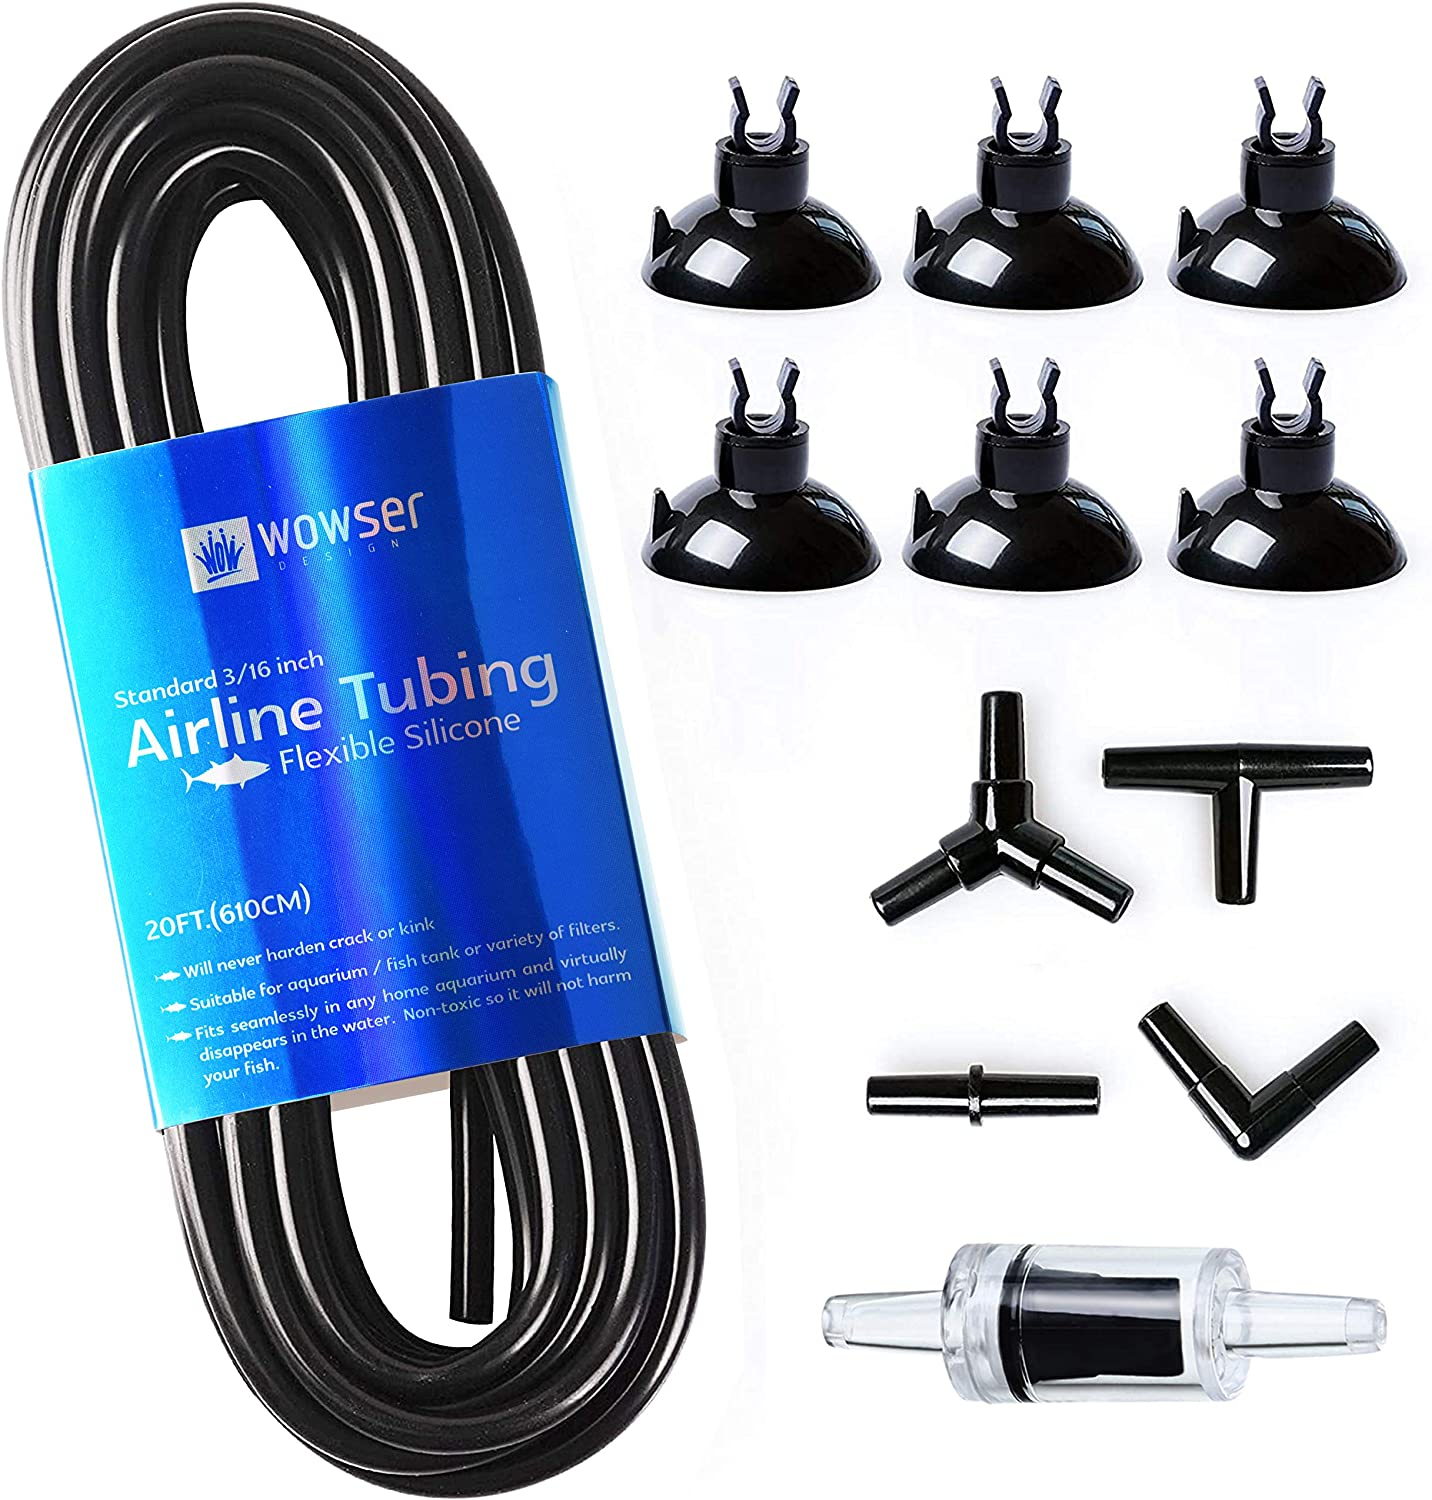 WOW Design 3/16-Inch Professional Flexible Airline Tubing Standard Aquarium Air Pump Accessories with Check Valves, Suction Cups and Connectors, 20 Feet (Clear-Black) : Pet Supplies